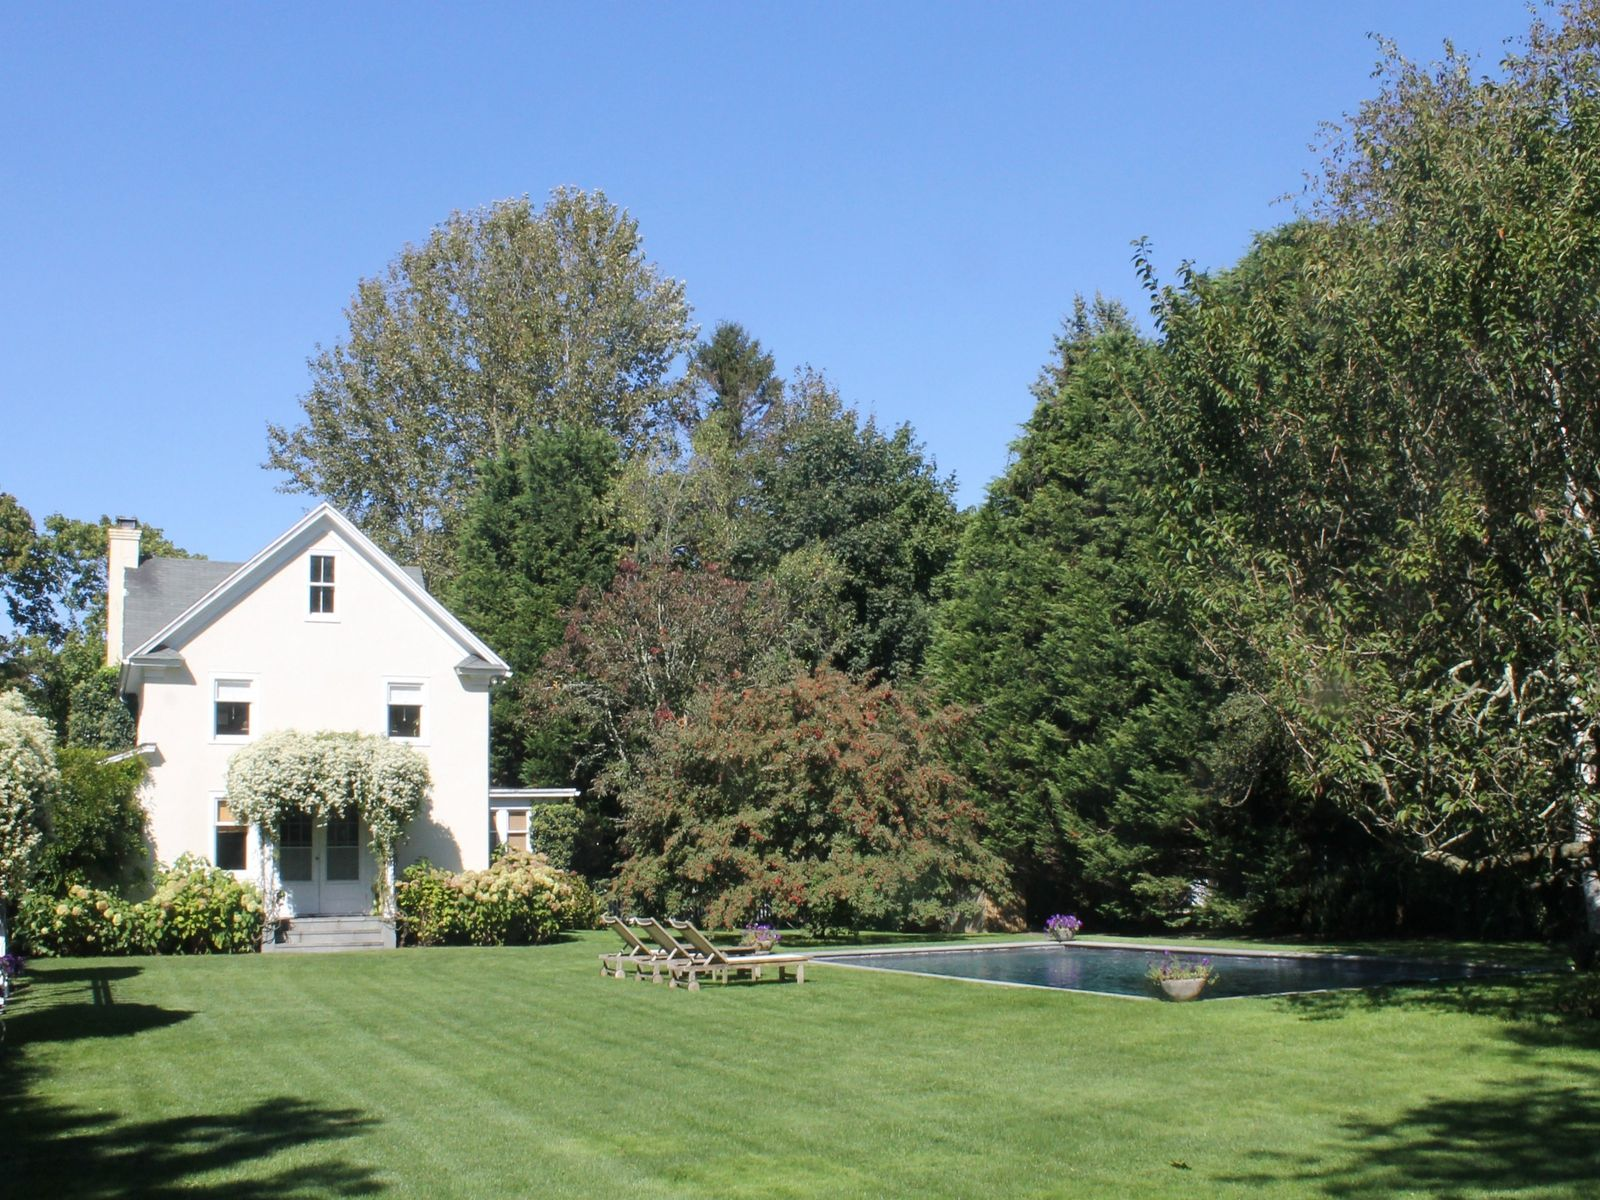 PUBLISHED WATER MILL FARMHOUSE